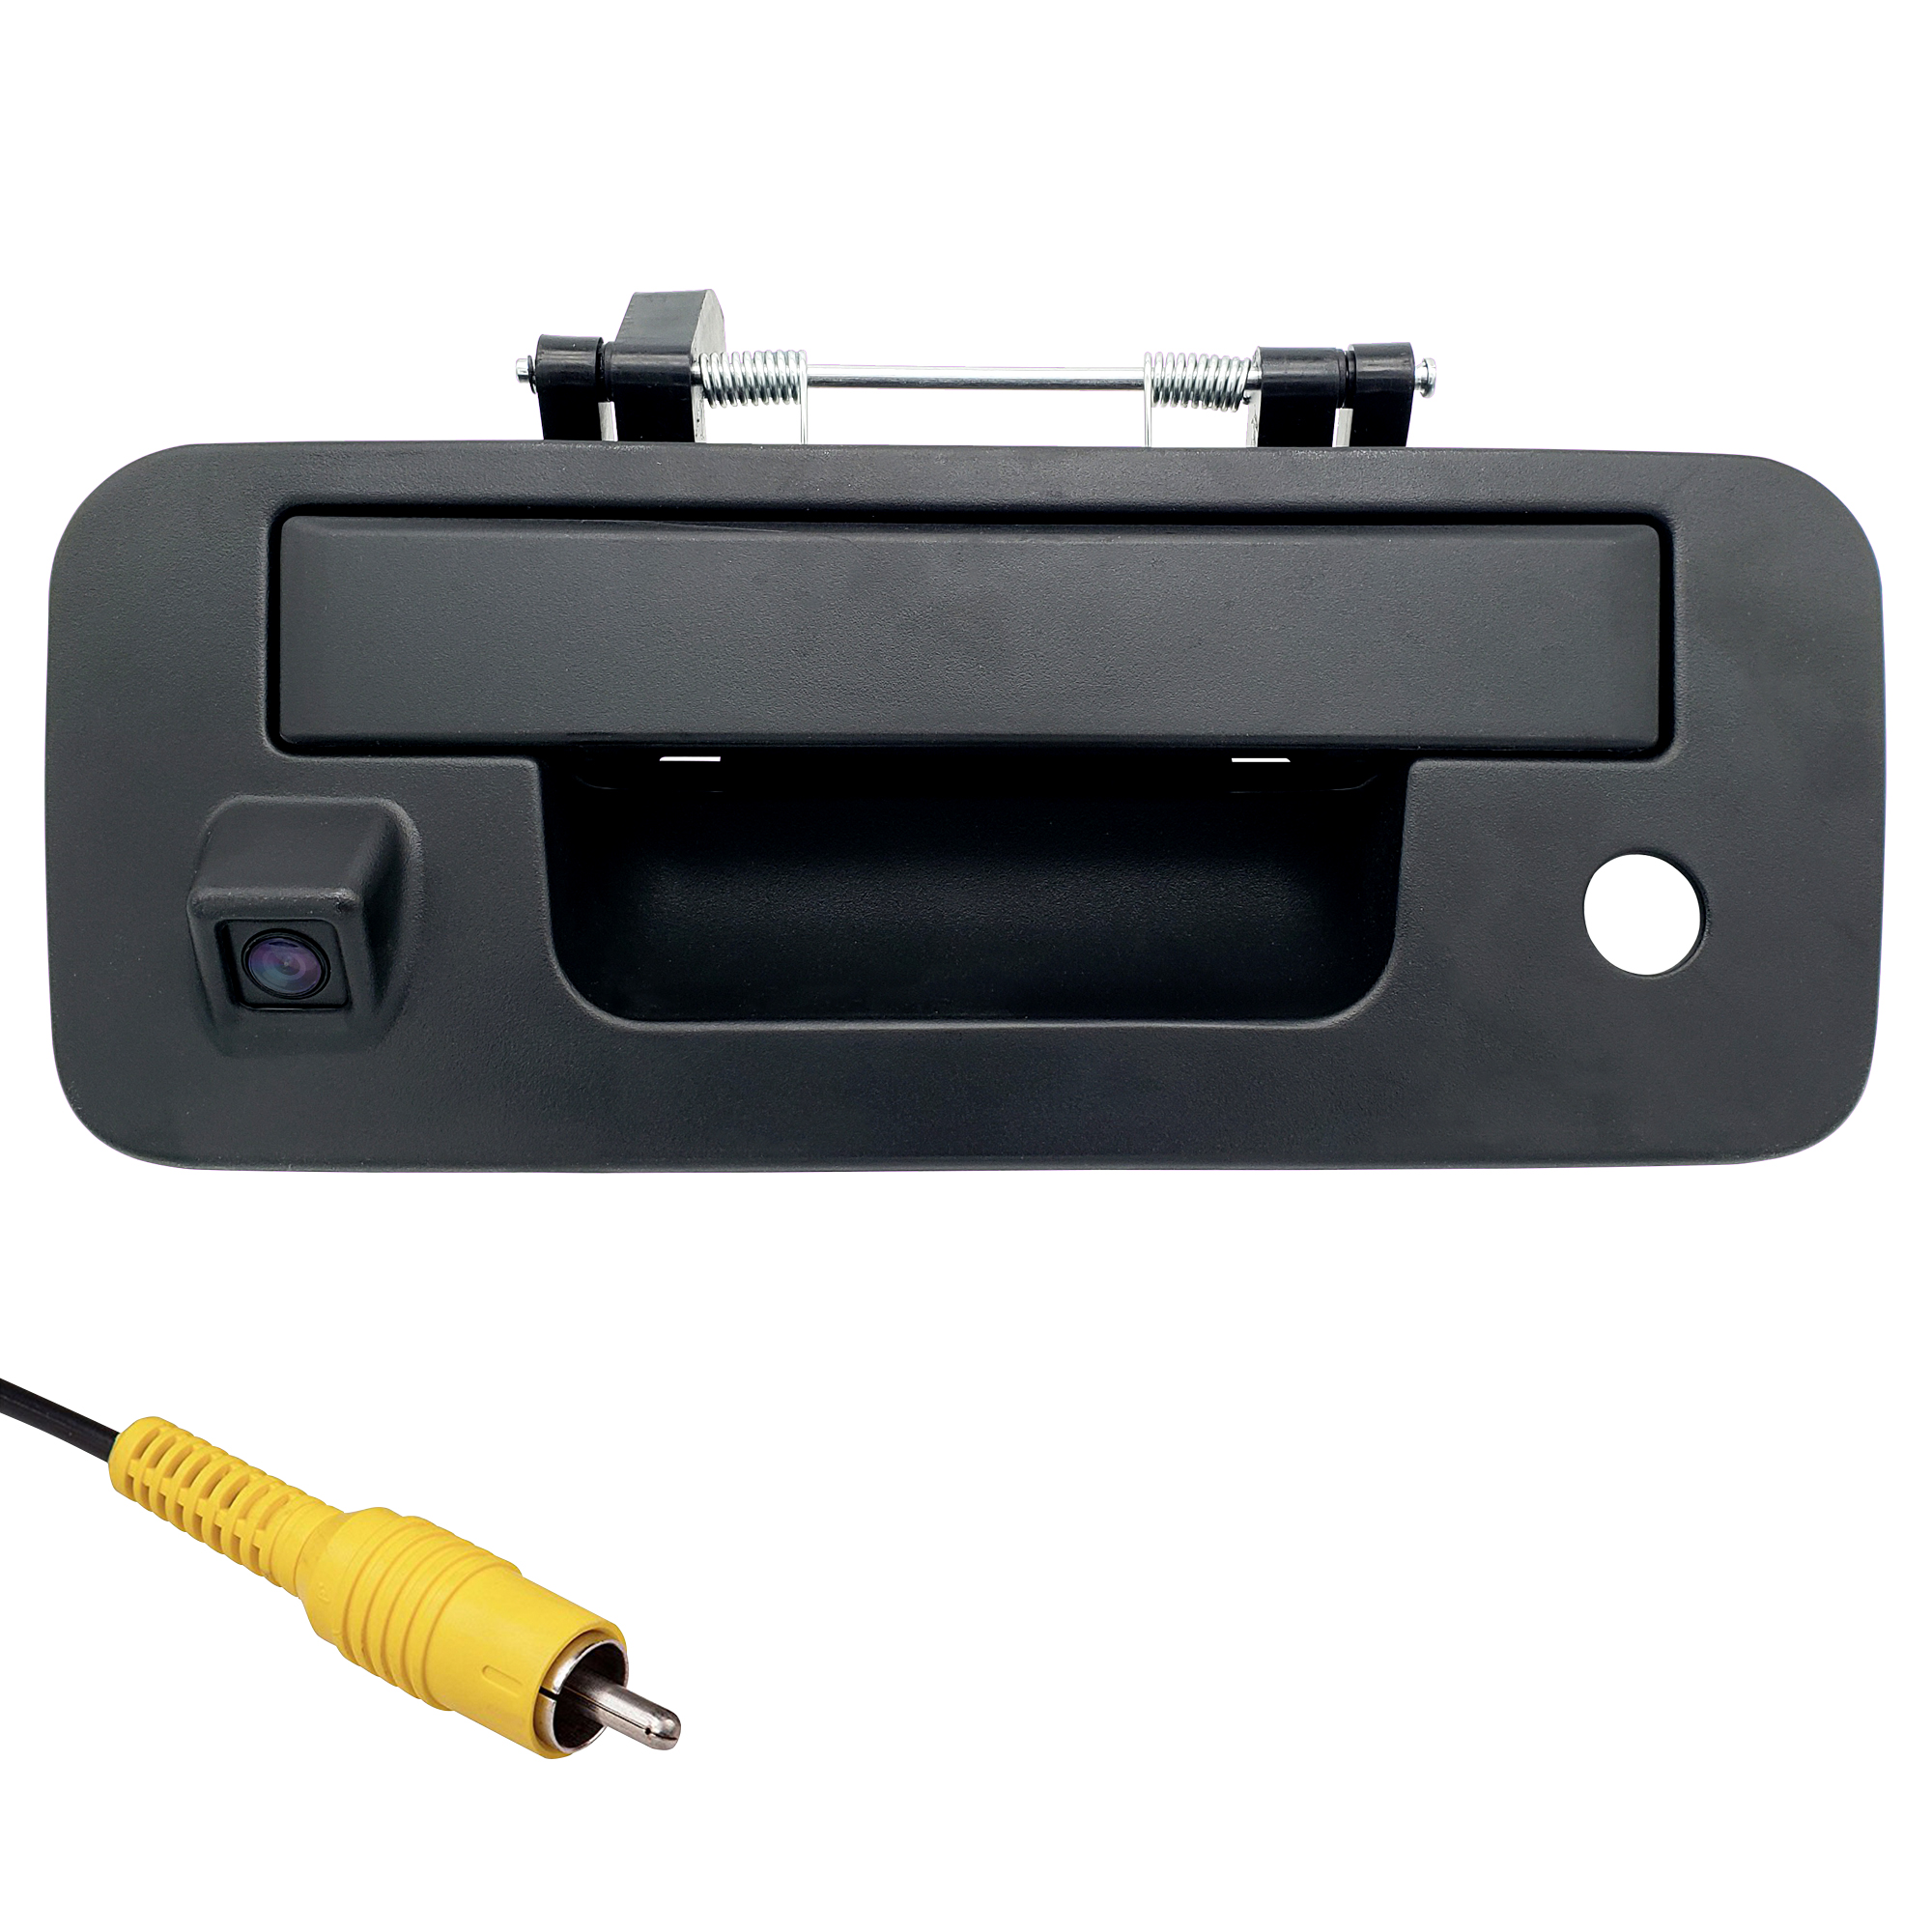 Master Tailgaters Black Tailgate Handle with Backup Camera Replacement for Nissan Titan 2013-2015